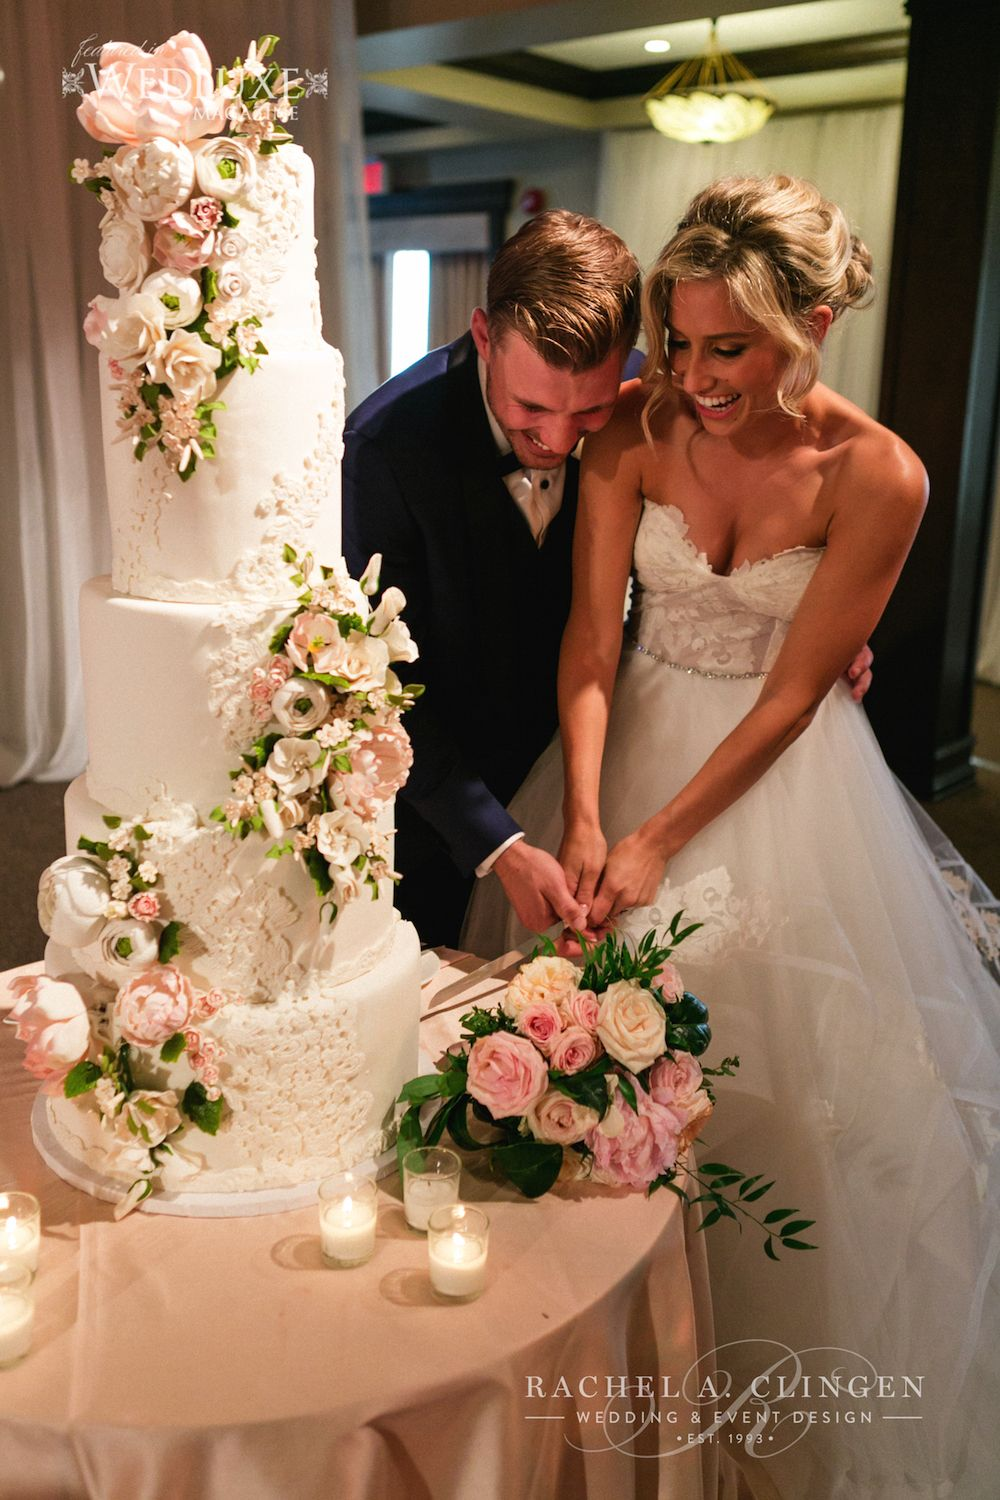 Guava wedding dresses  Rustic Romance For Casey And Kristyus Palais Royale Wedding